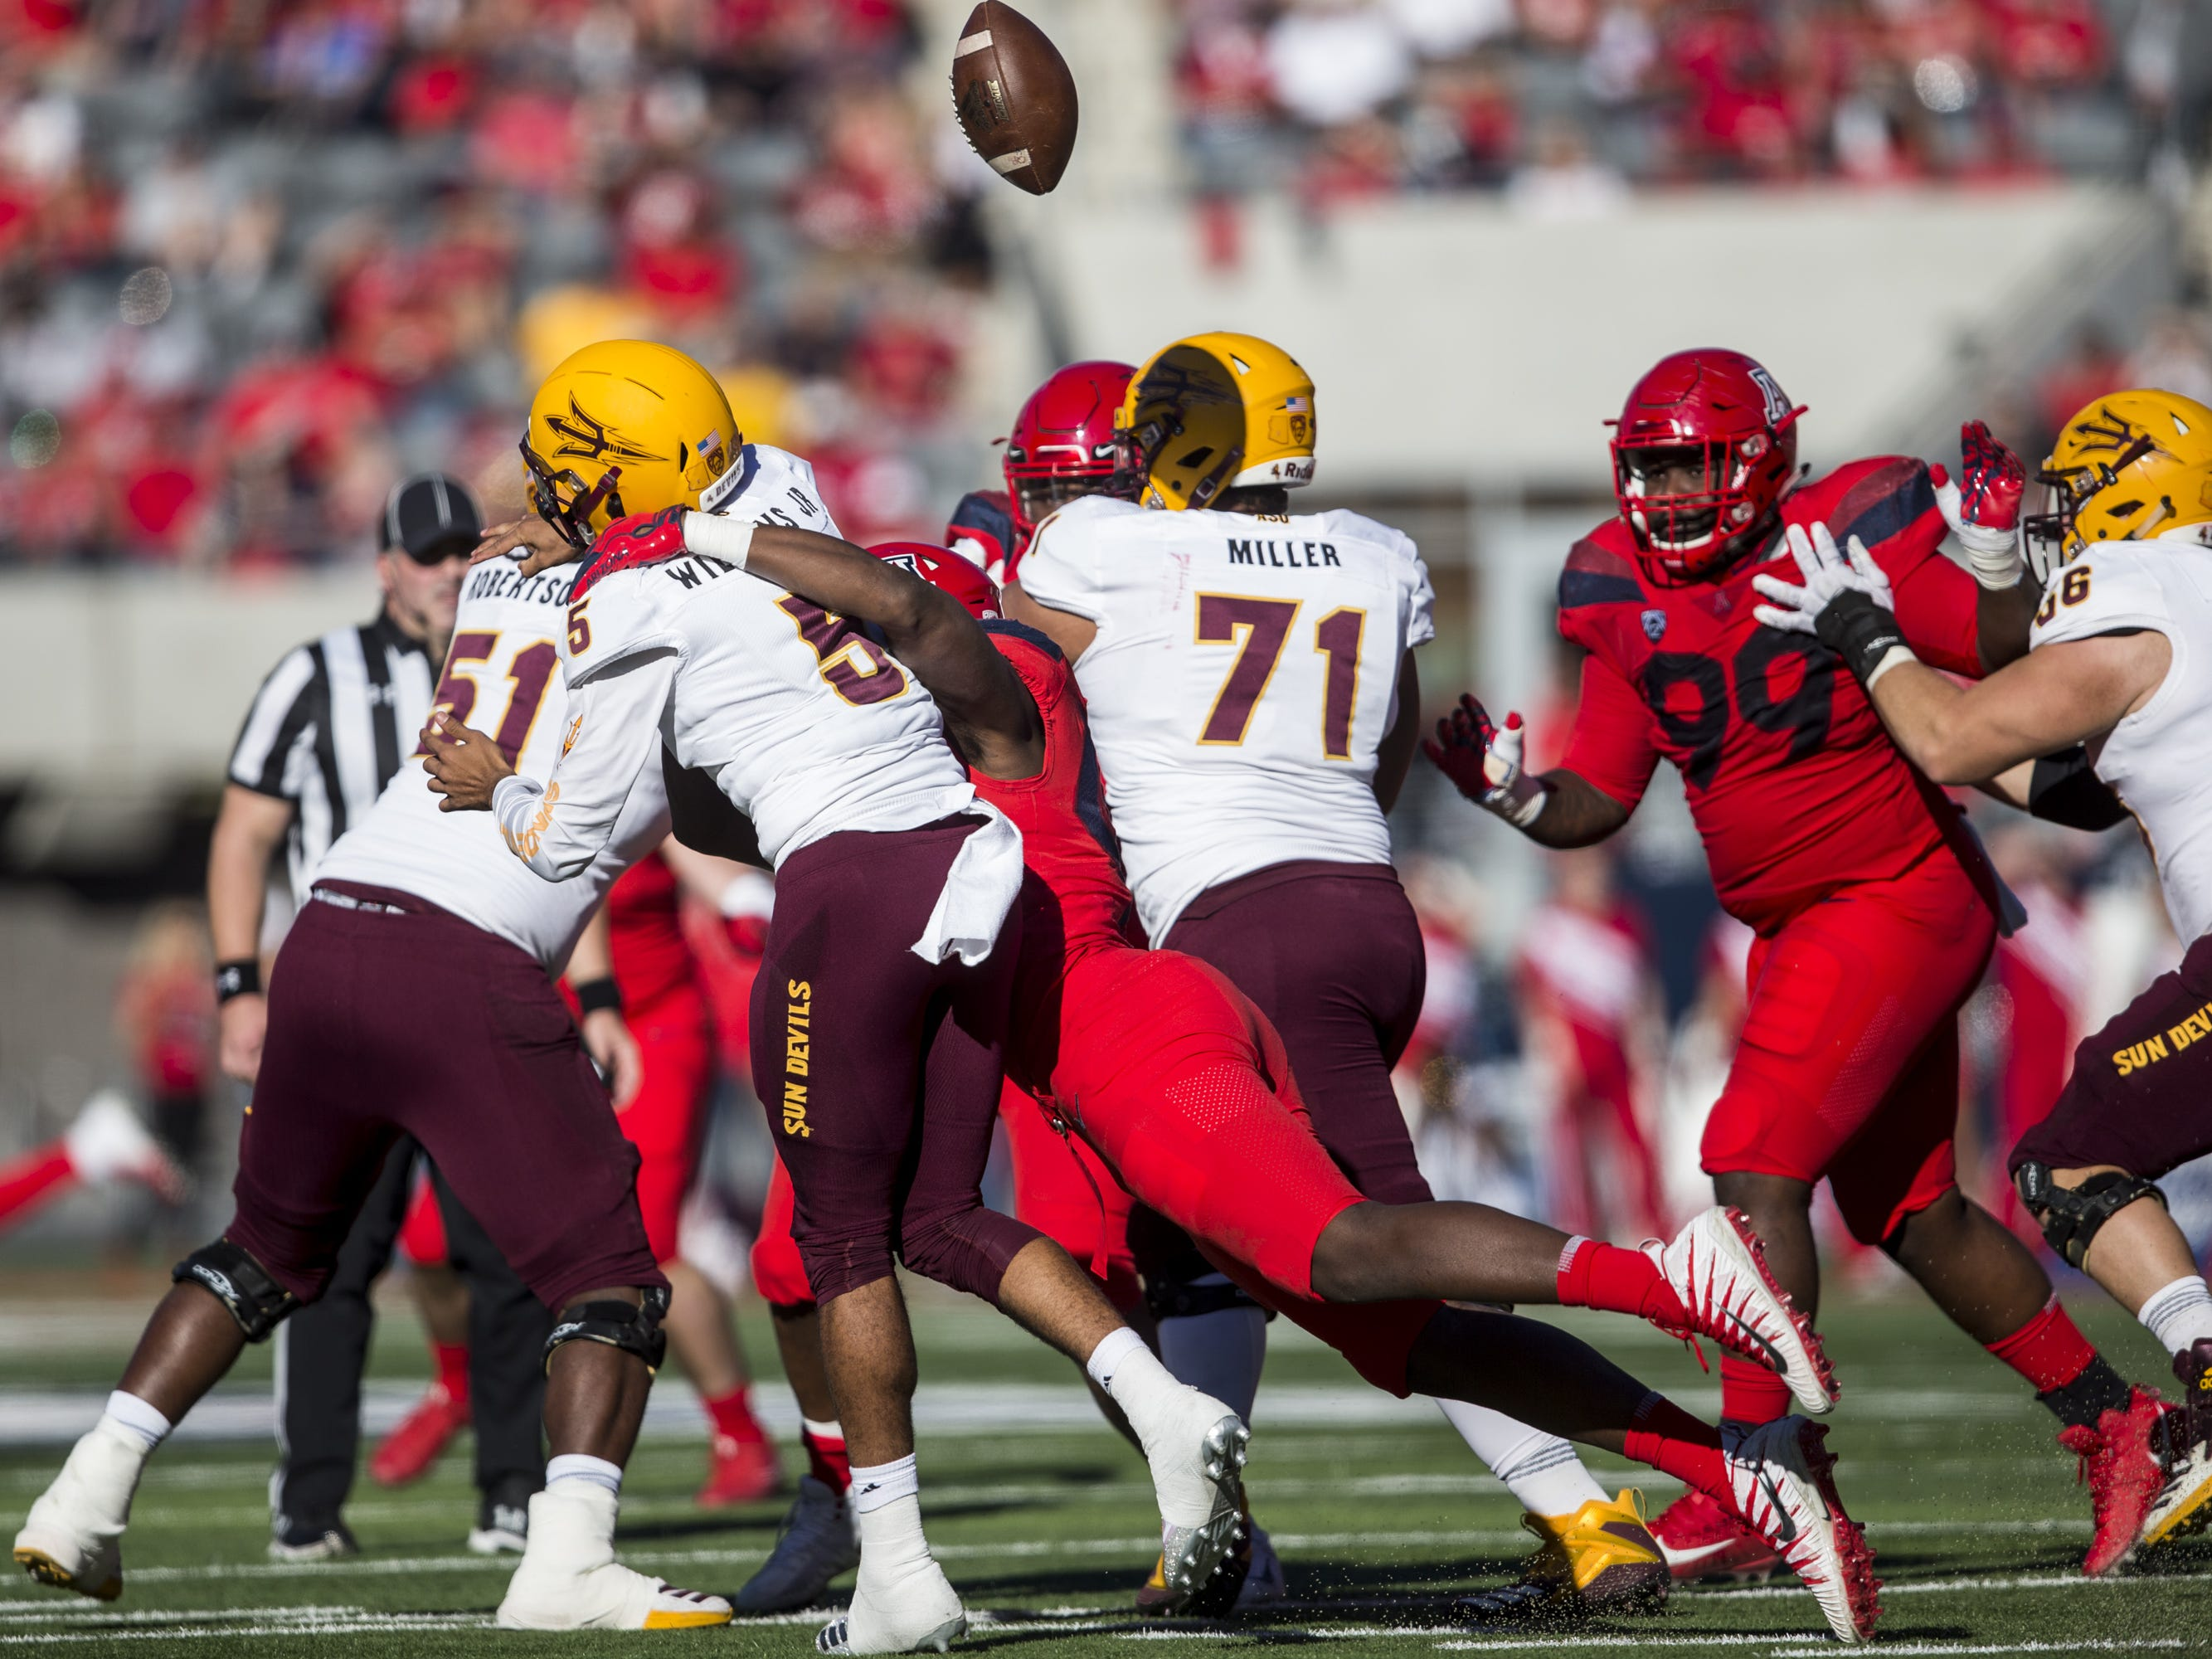 Arizona State's Manny Wilkins fumbles the ball after being hit by Arizona's Jalen Harris during the first half of the Territorial Cup on Saturday, Nov. 24, 2018, at Arizona Stadium in Tucson, Ariz.